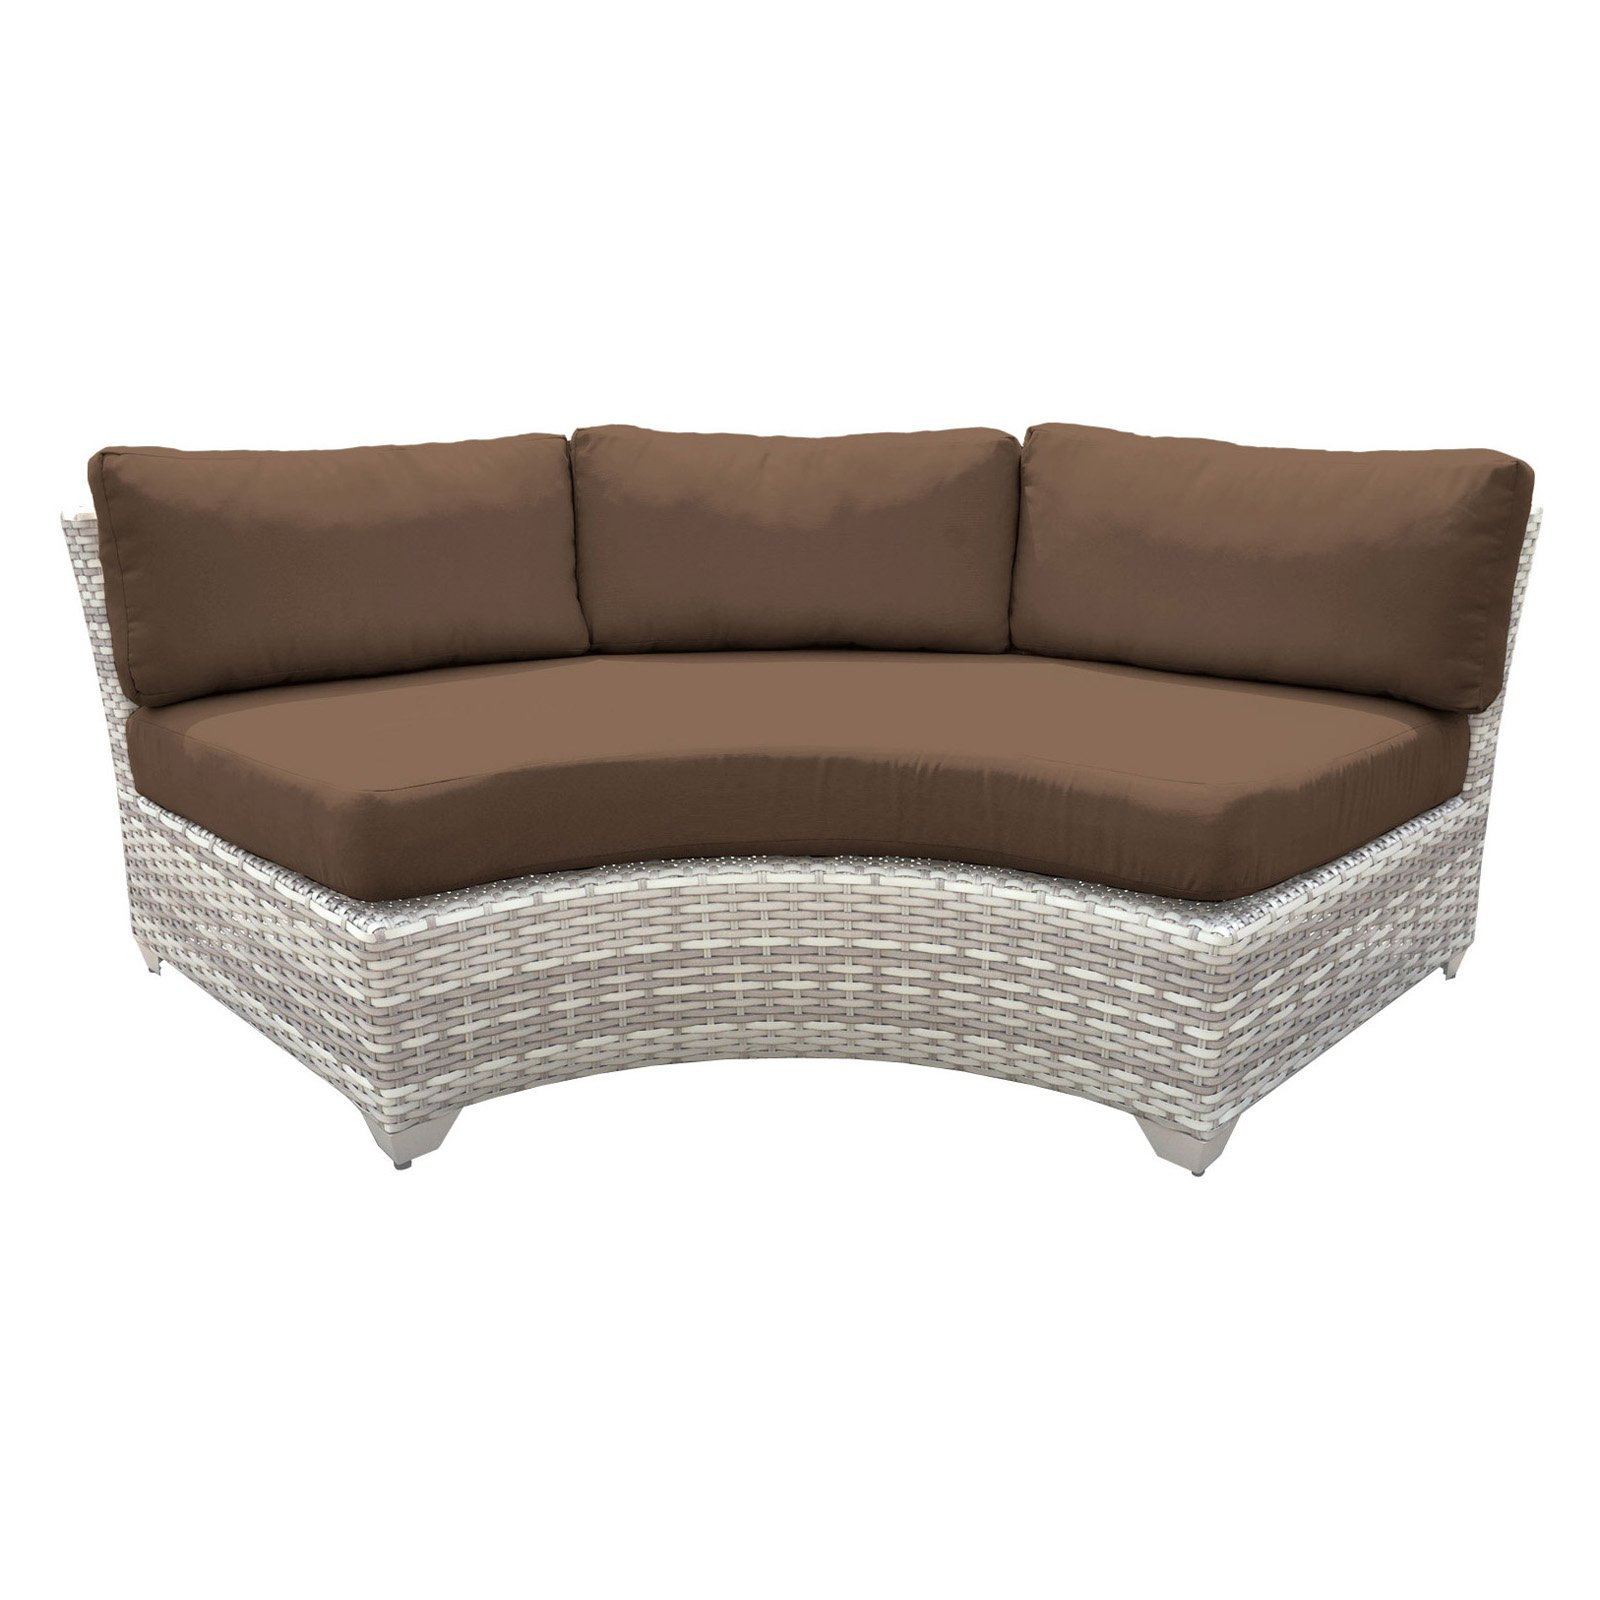 Newest Waterbury Curved Armless Sofa With Cushions Regarding Tk Classics Outdoor Wicker Curved Armless Sofa Sectional (View 8 of 20)